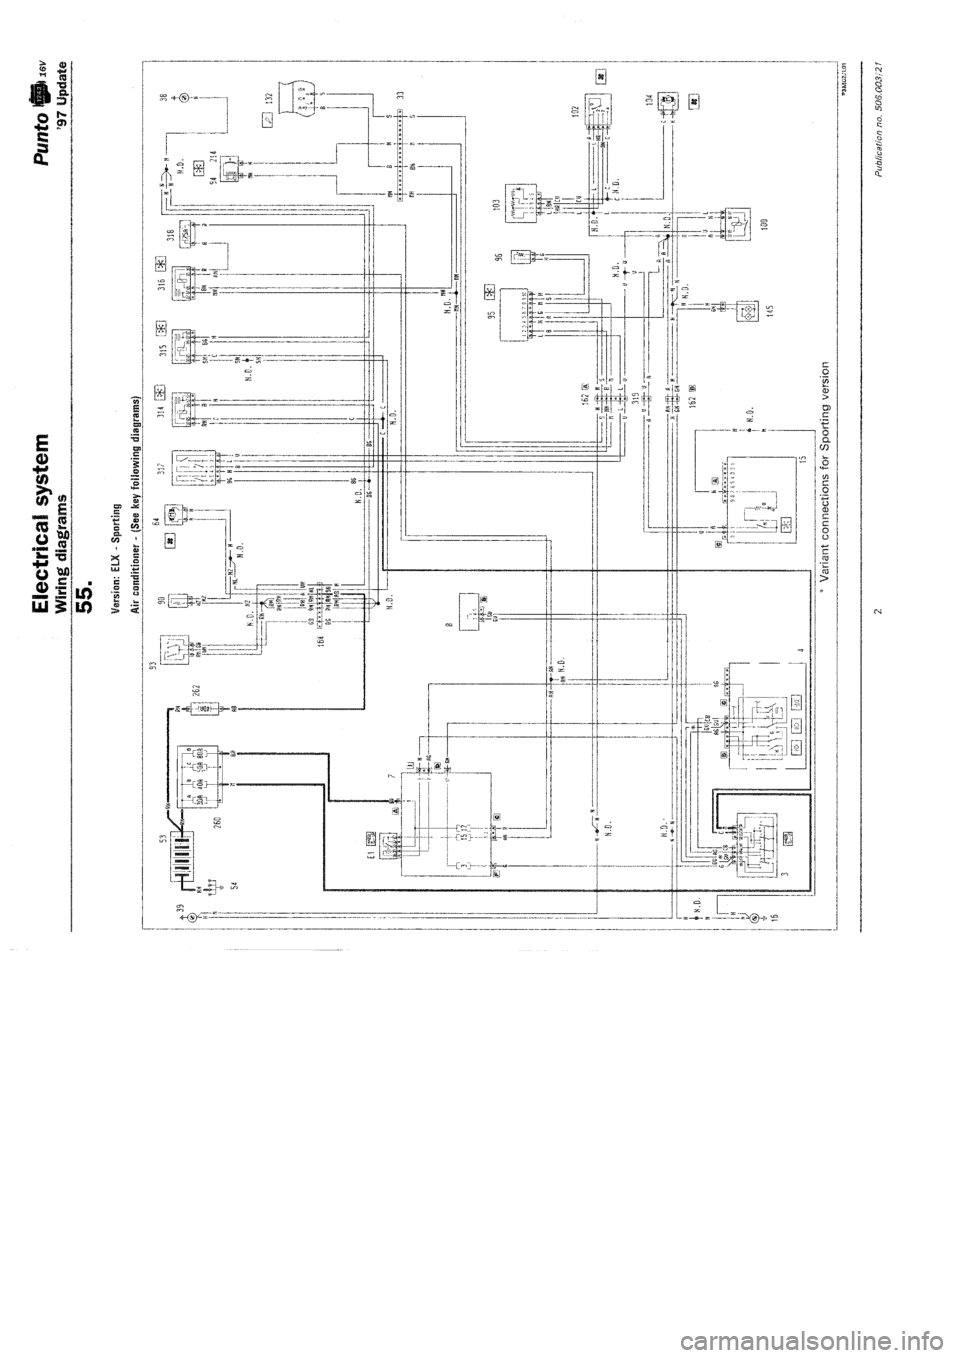 hight resolution of w960 4692 2 fiat punto 1997 176 1 g wiring diagrams workshop manual fiat